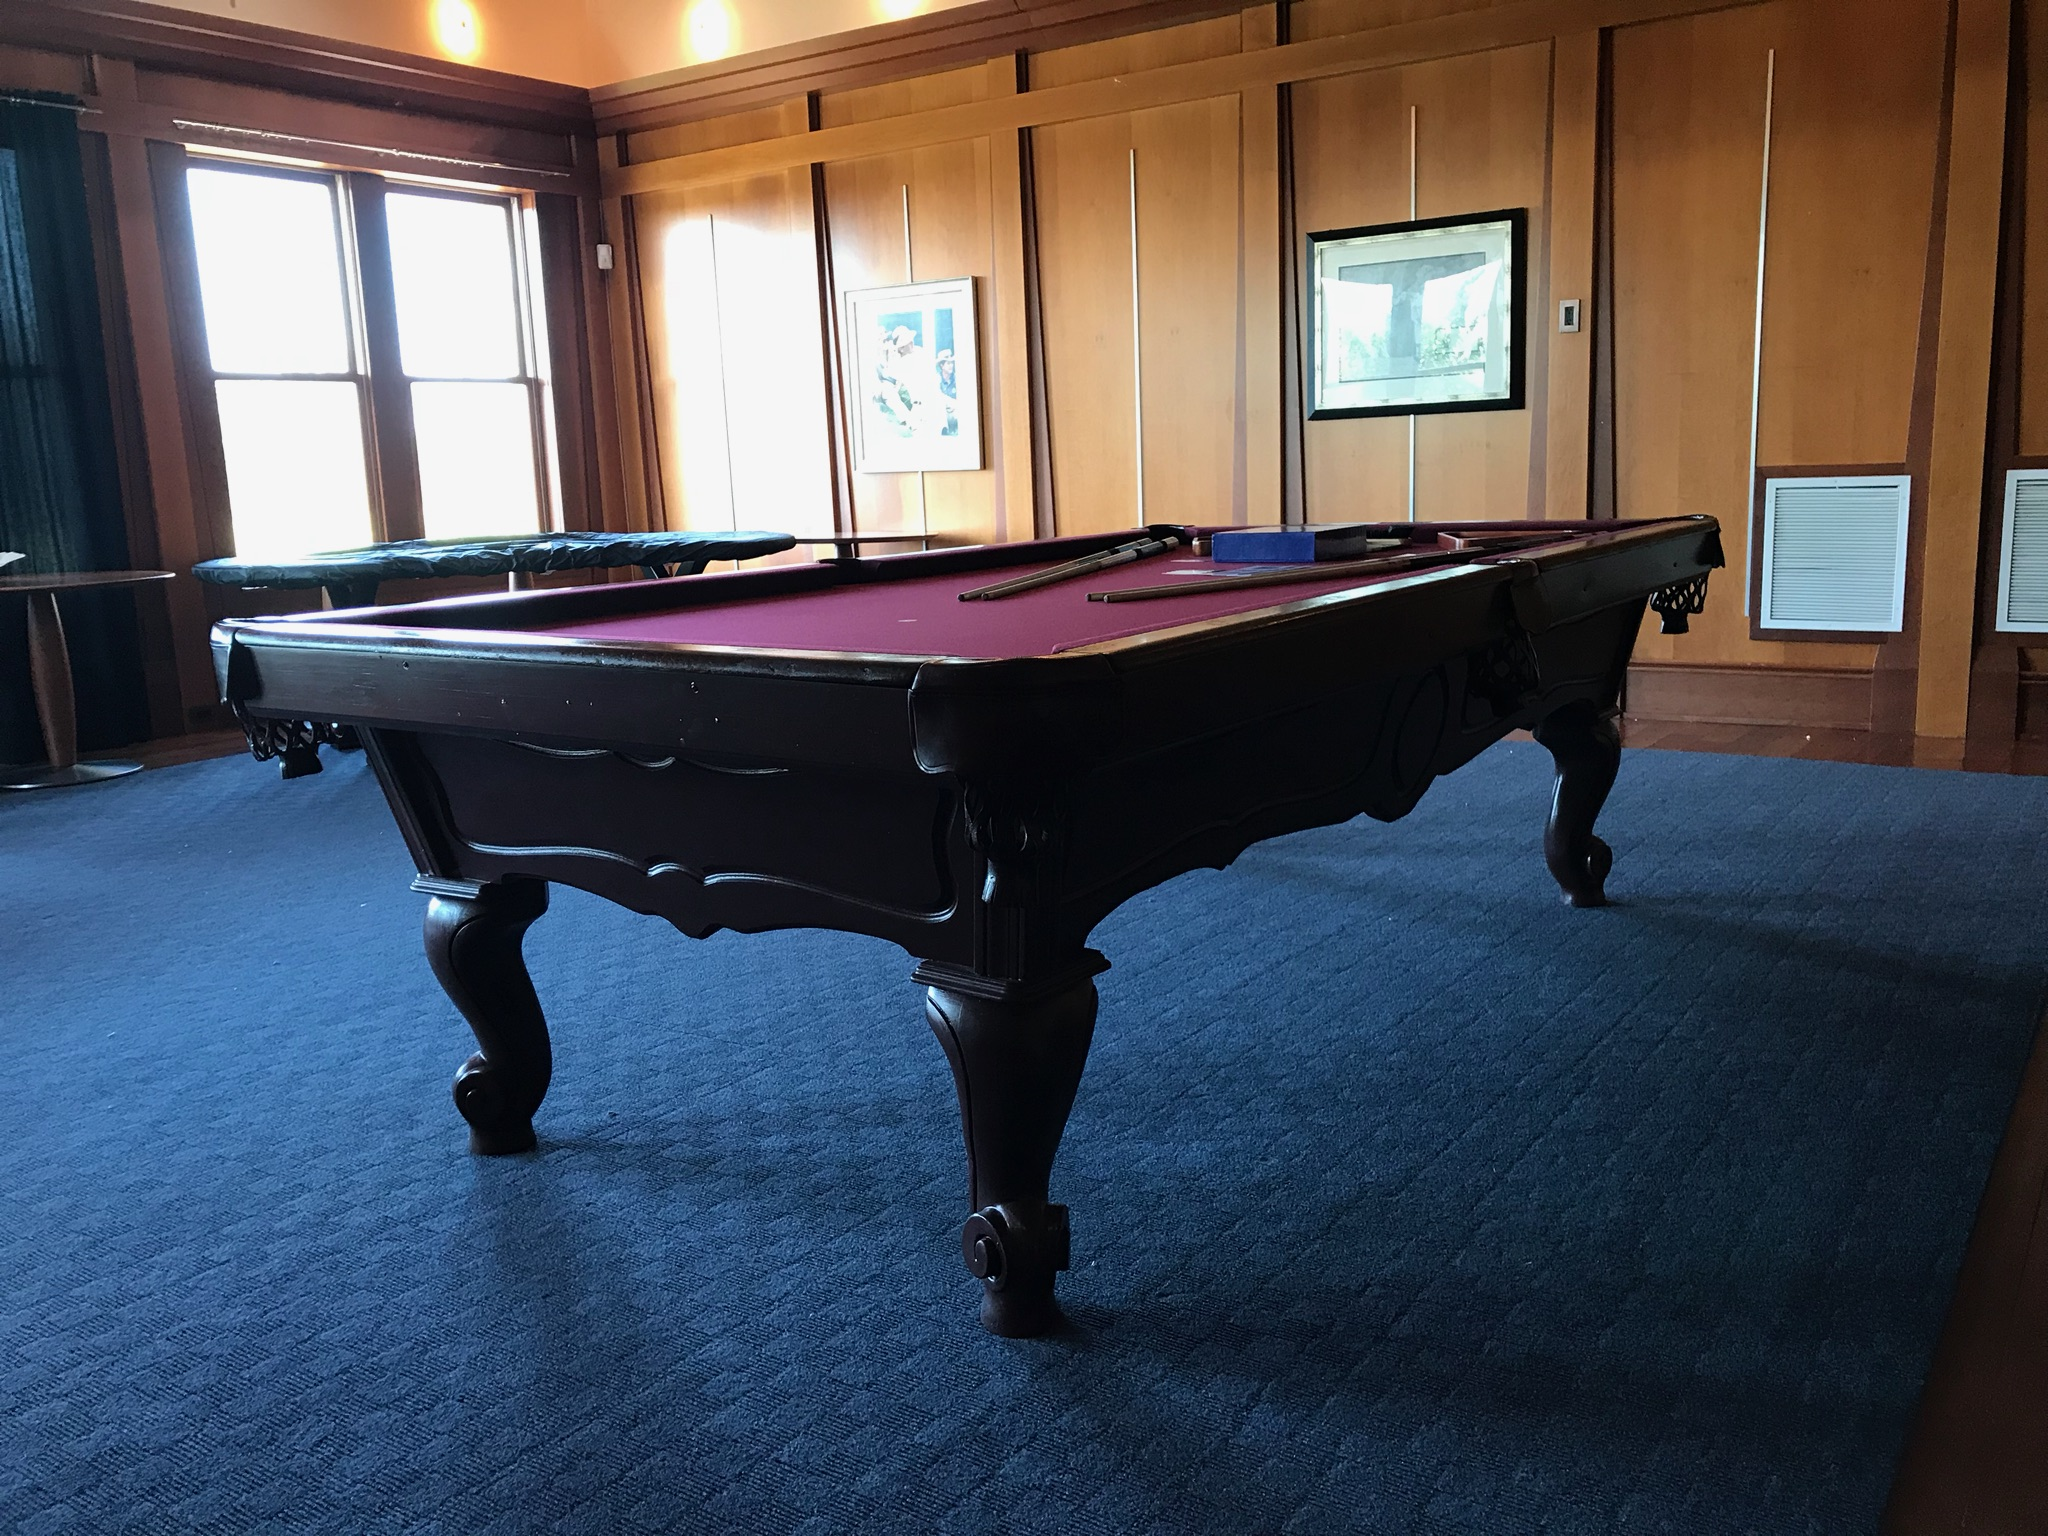 Merveilleux Cateechee Golf Course Recently Purchased A 9 Foot Pool Table For Their  Surprise Recreation Room For Their Members. The Room Was Beautiful And The  Table ...